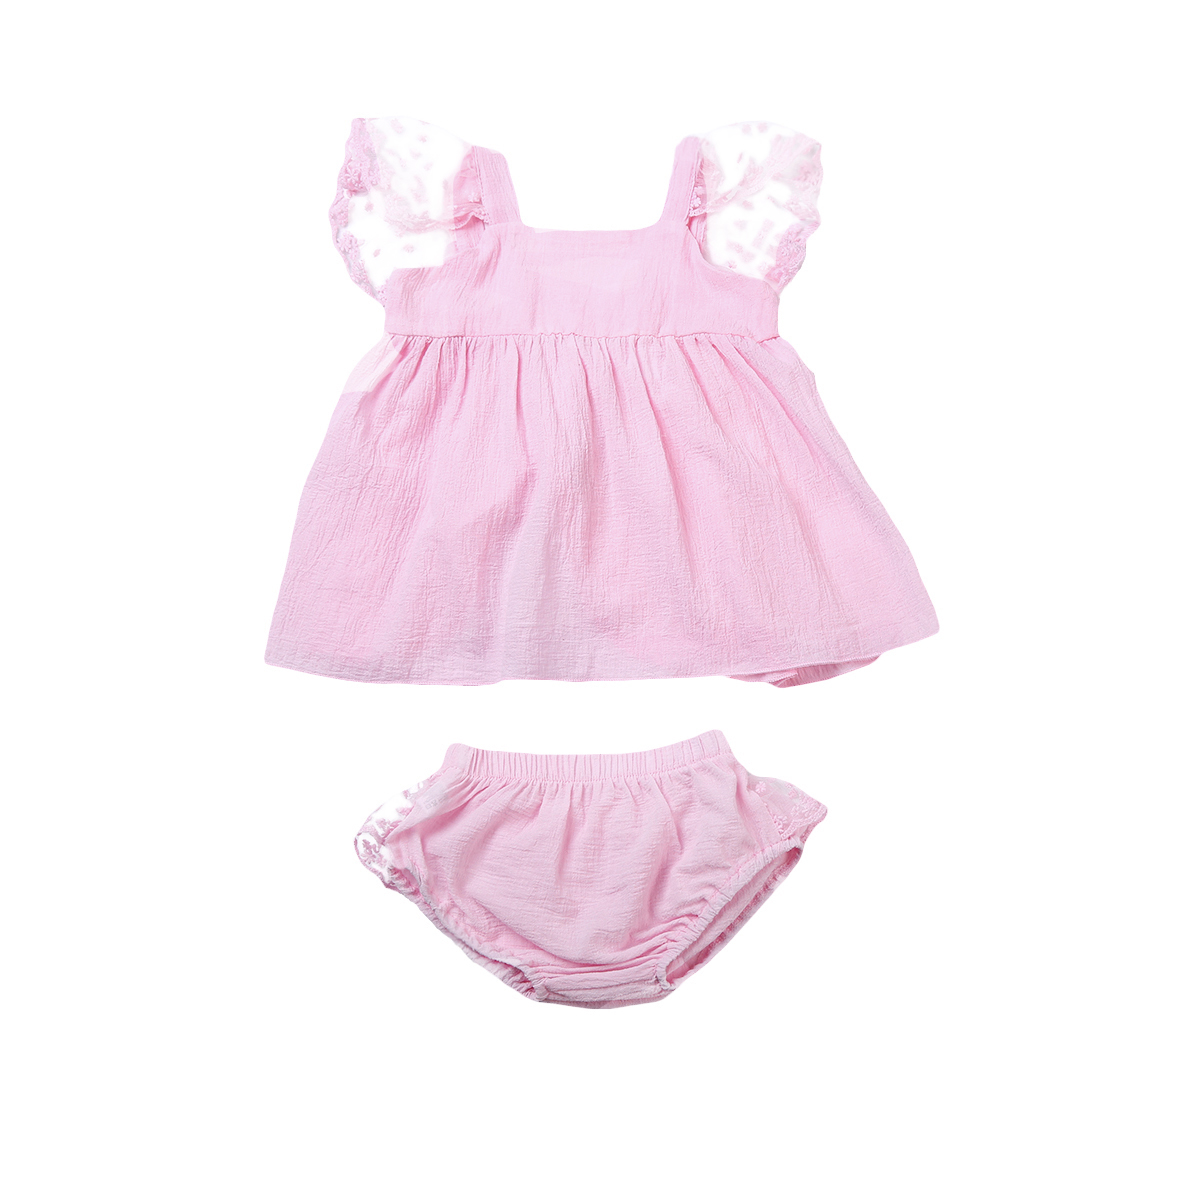 Pink Newborn Baby Girl Clothes 2017 Summer Lace Bow Dress ...